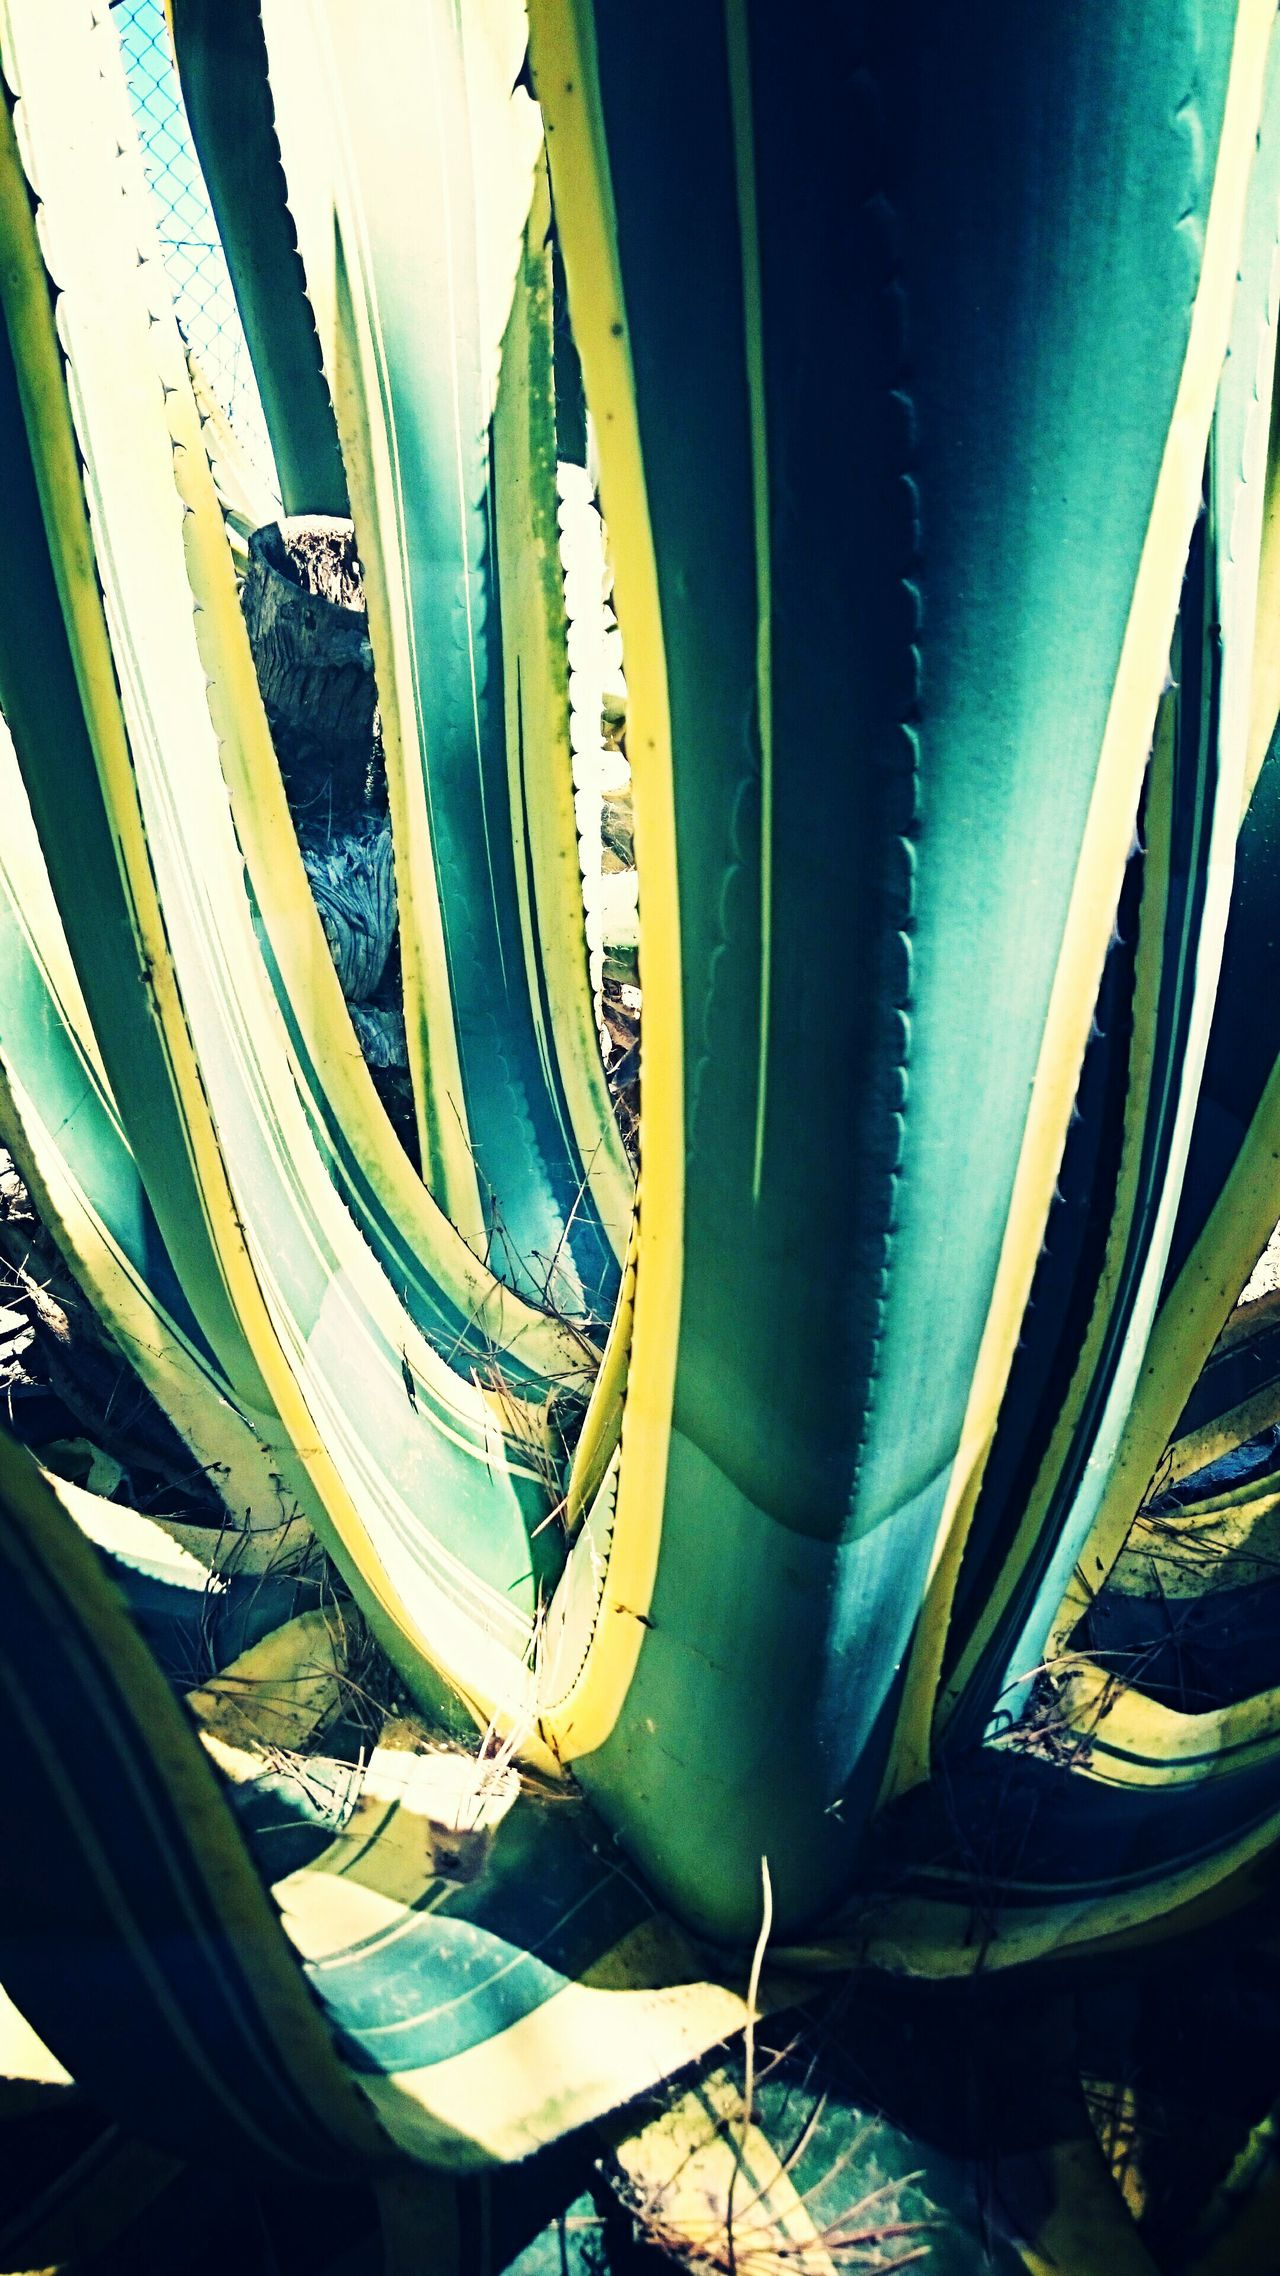 Cactus Hanging Out Taking Photos Check This Out That's Me Hello World Cheese! Relaxing Hi! Enjoying Life Pivotal Ideas First Eyeem Photo Home Is Where The Art Is Ocean Colour Of Life Hidden Gems  Color Palette Enjoying Life Hi! Relaxing Cheese! Hello World That's Me Check This Out Taking Photos Hanging Out